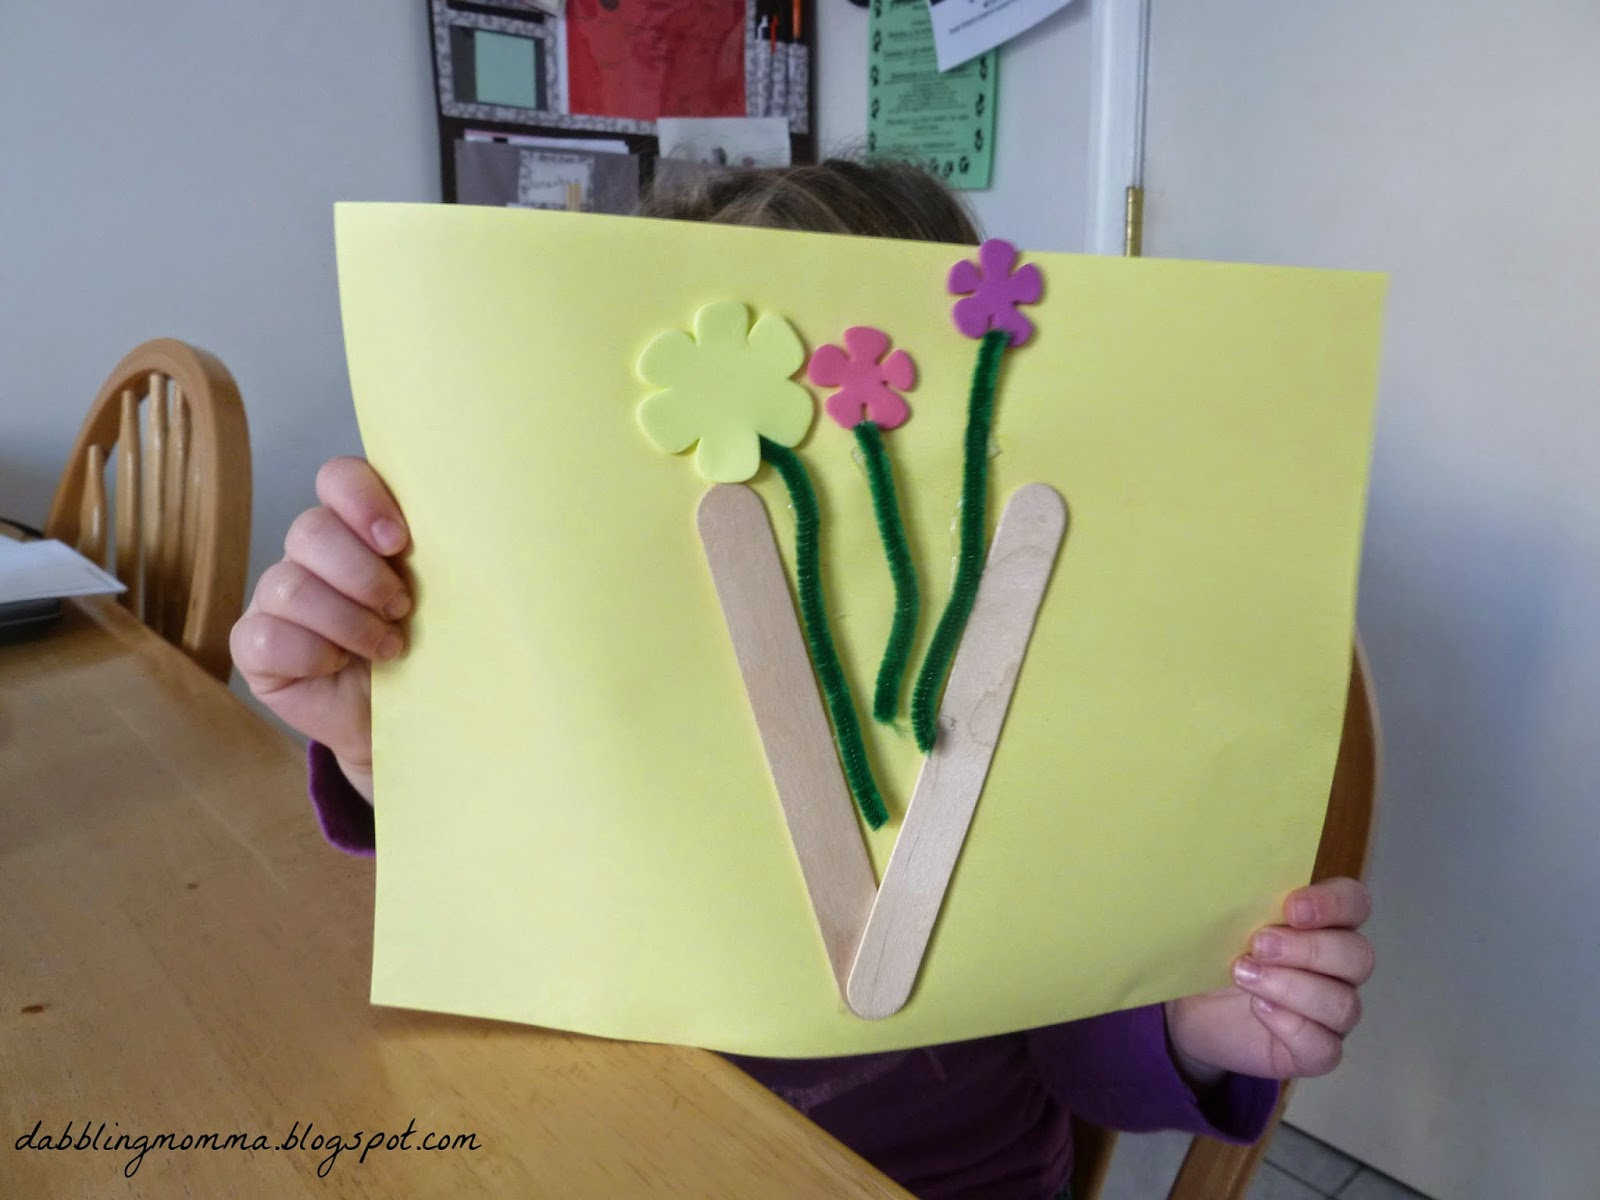 Dabblingmomma 10 Ways To Explore And Learn With Letters